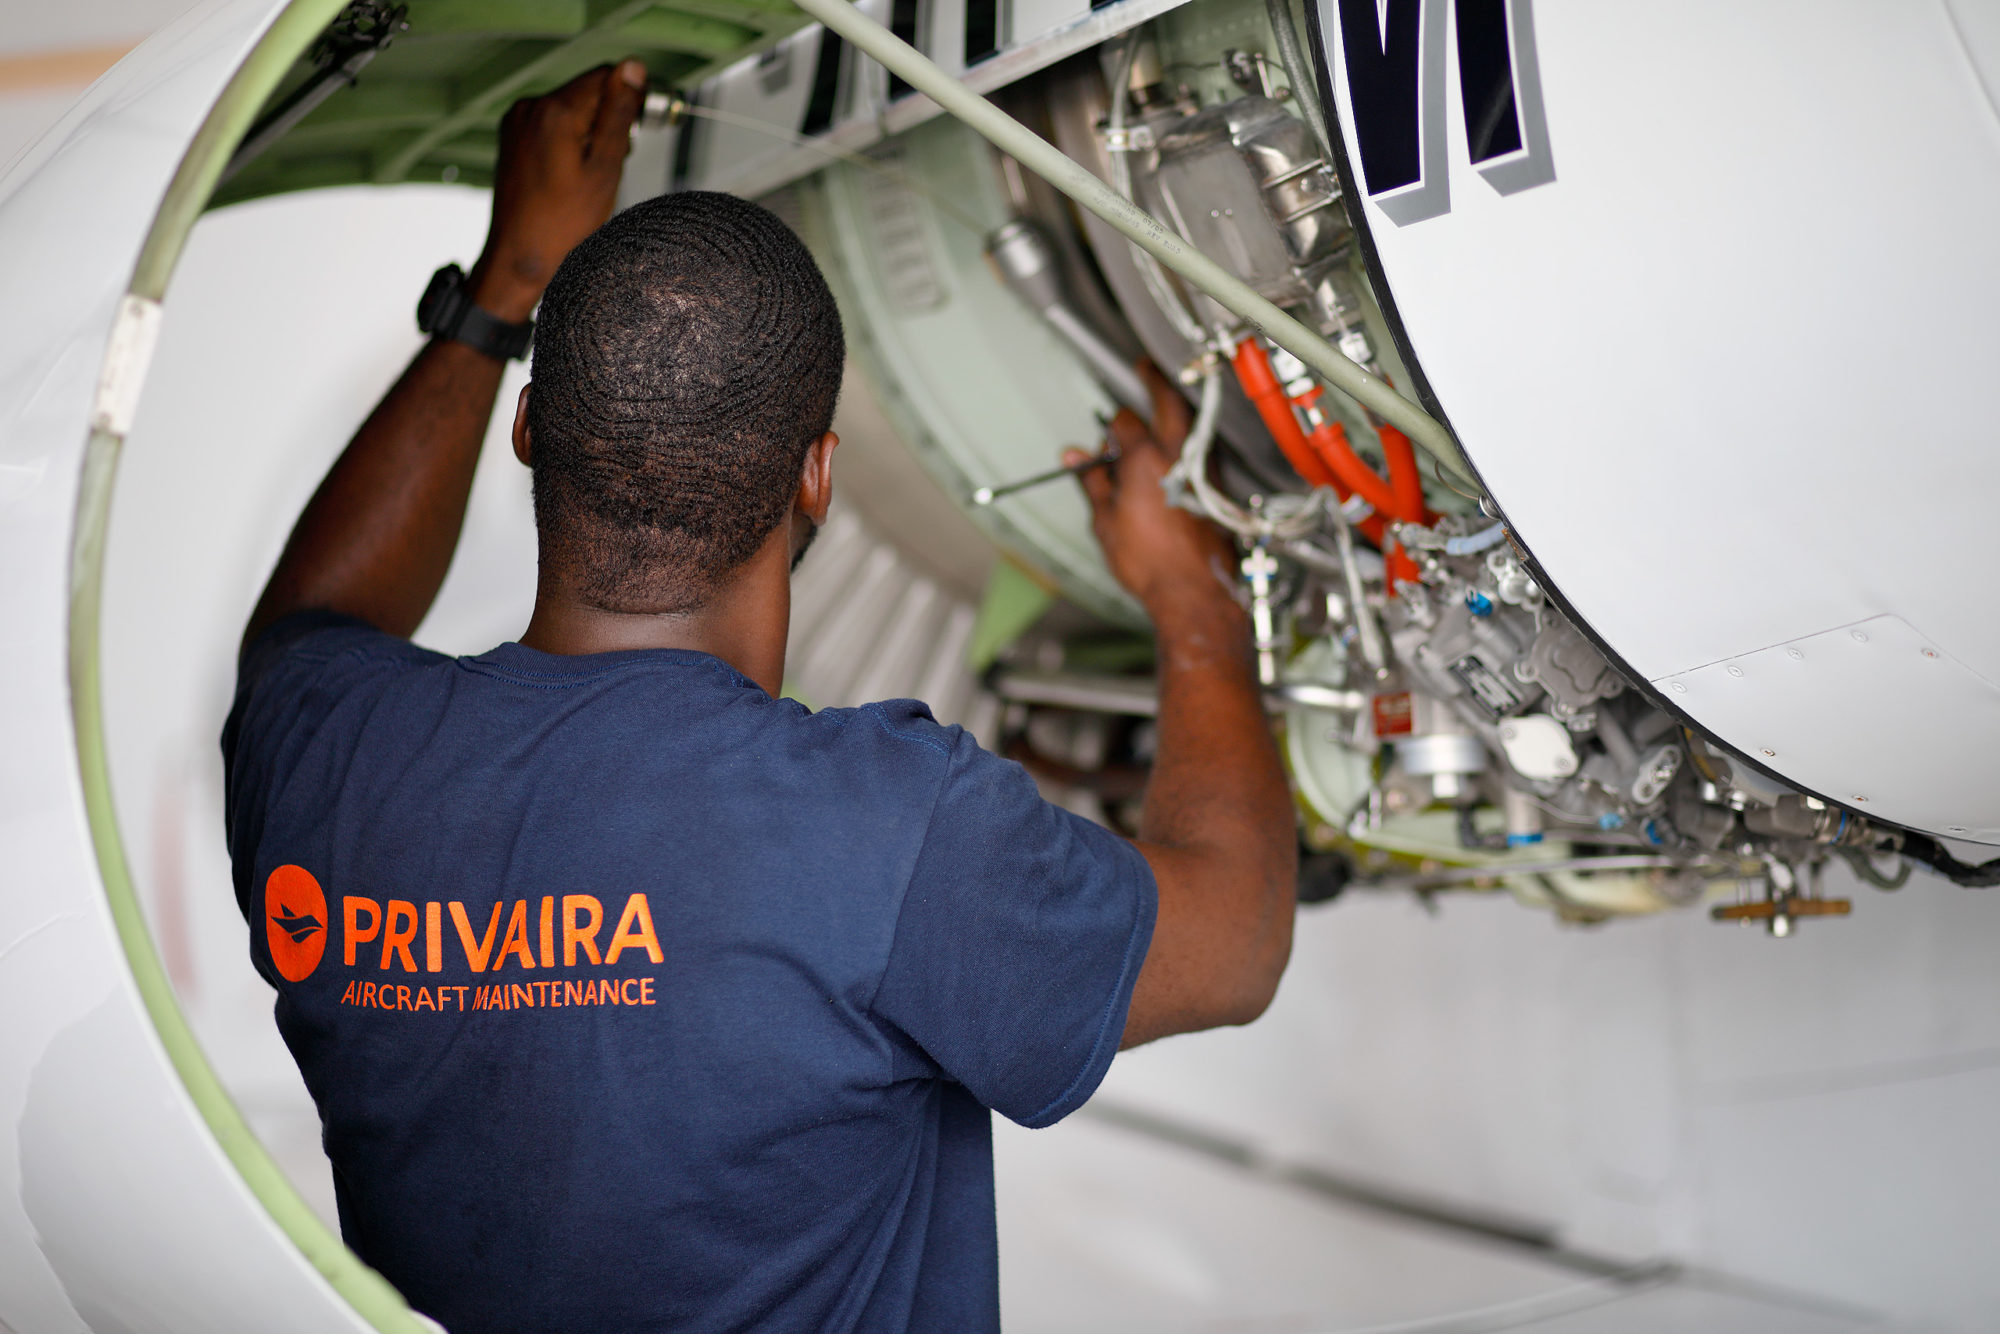 Privaira mechanic safety check